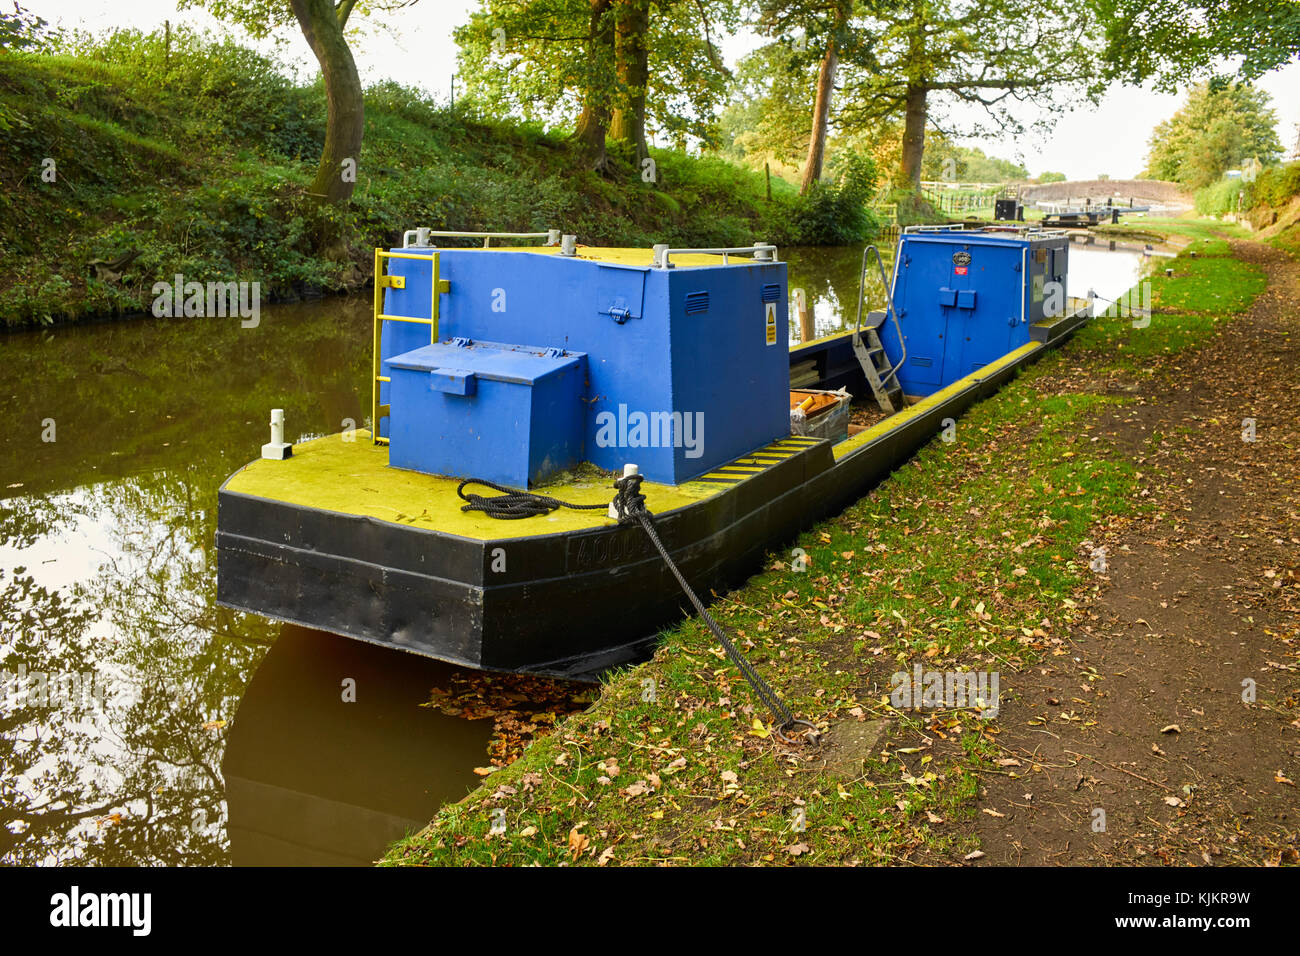 Canal and River Trust workboat Churnet at lock 1 Audlem, Cheshire - Stock Image